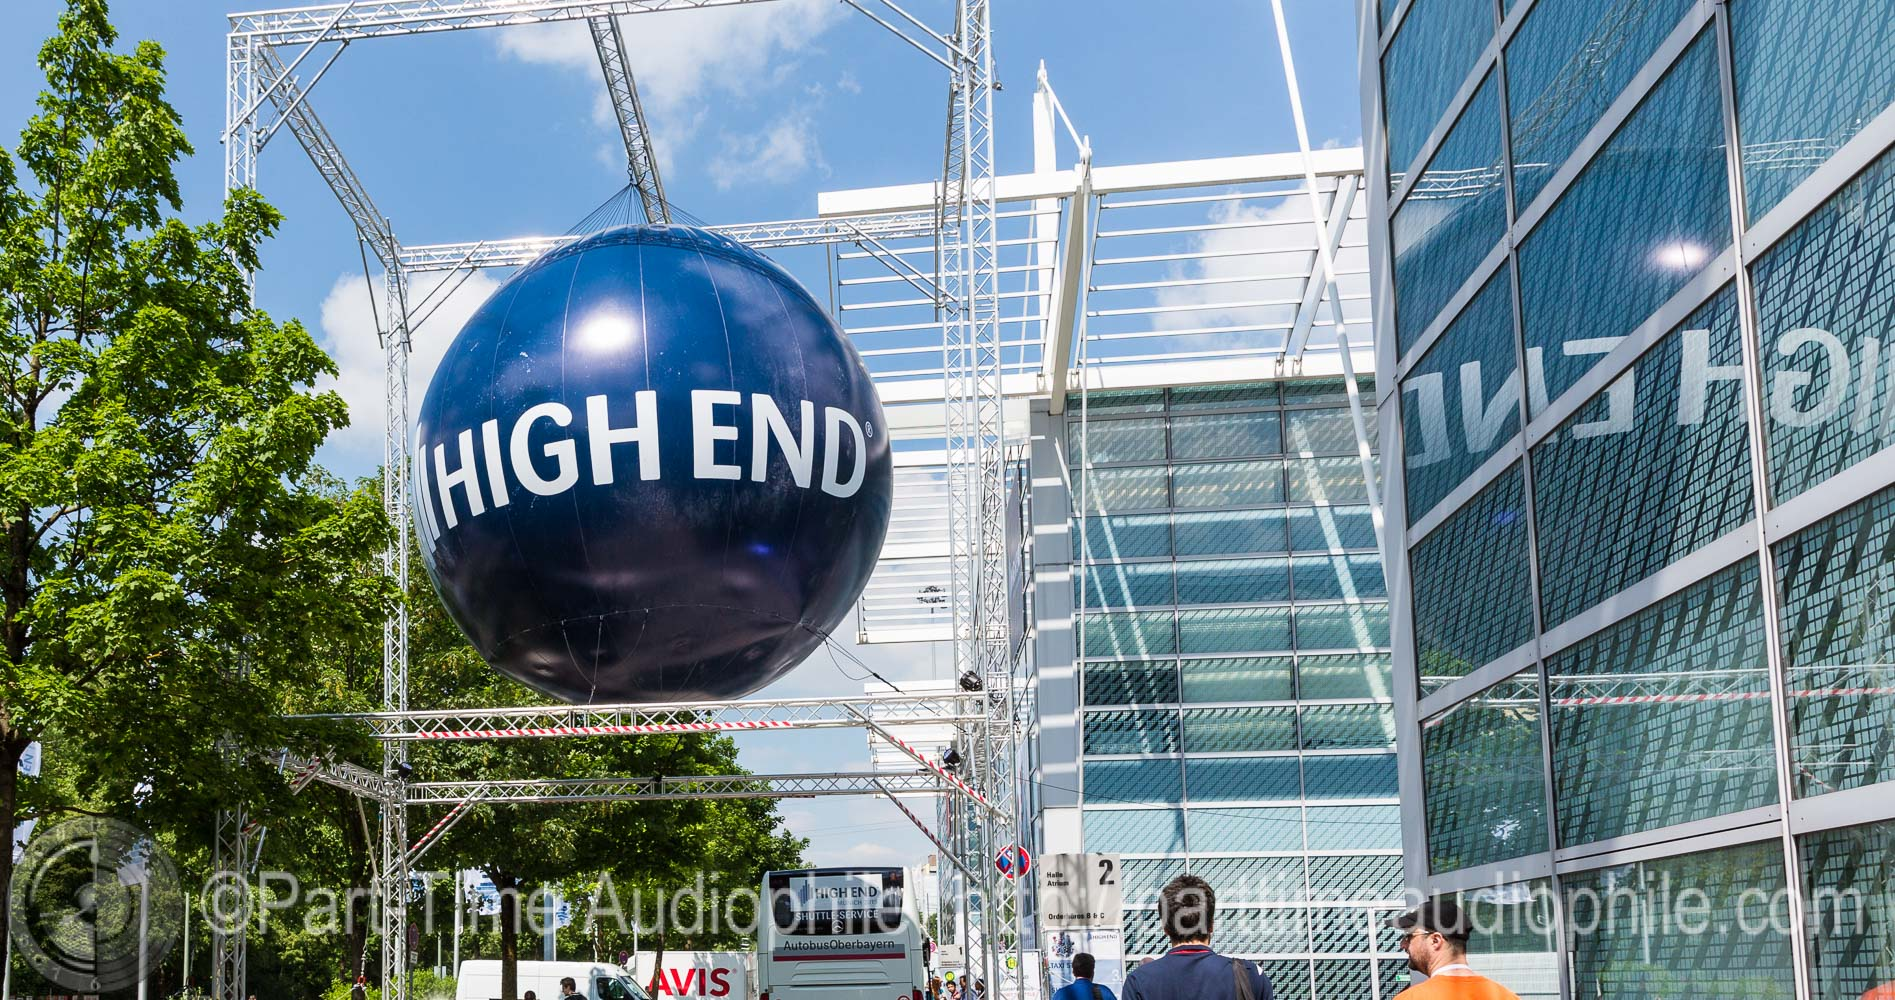 High End 2015: End of Line and Best In Show